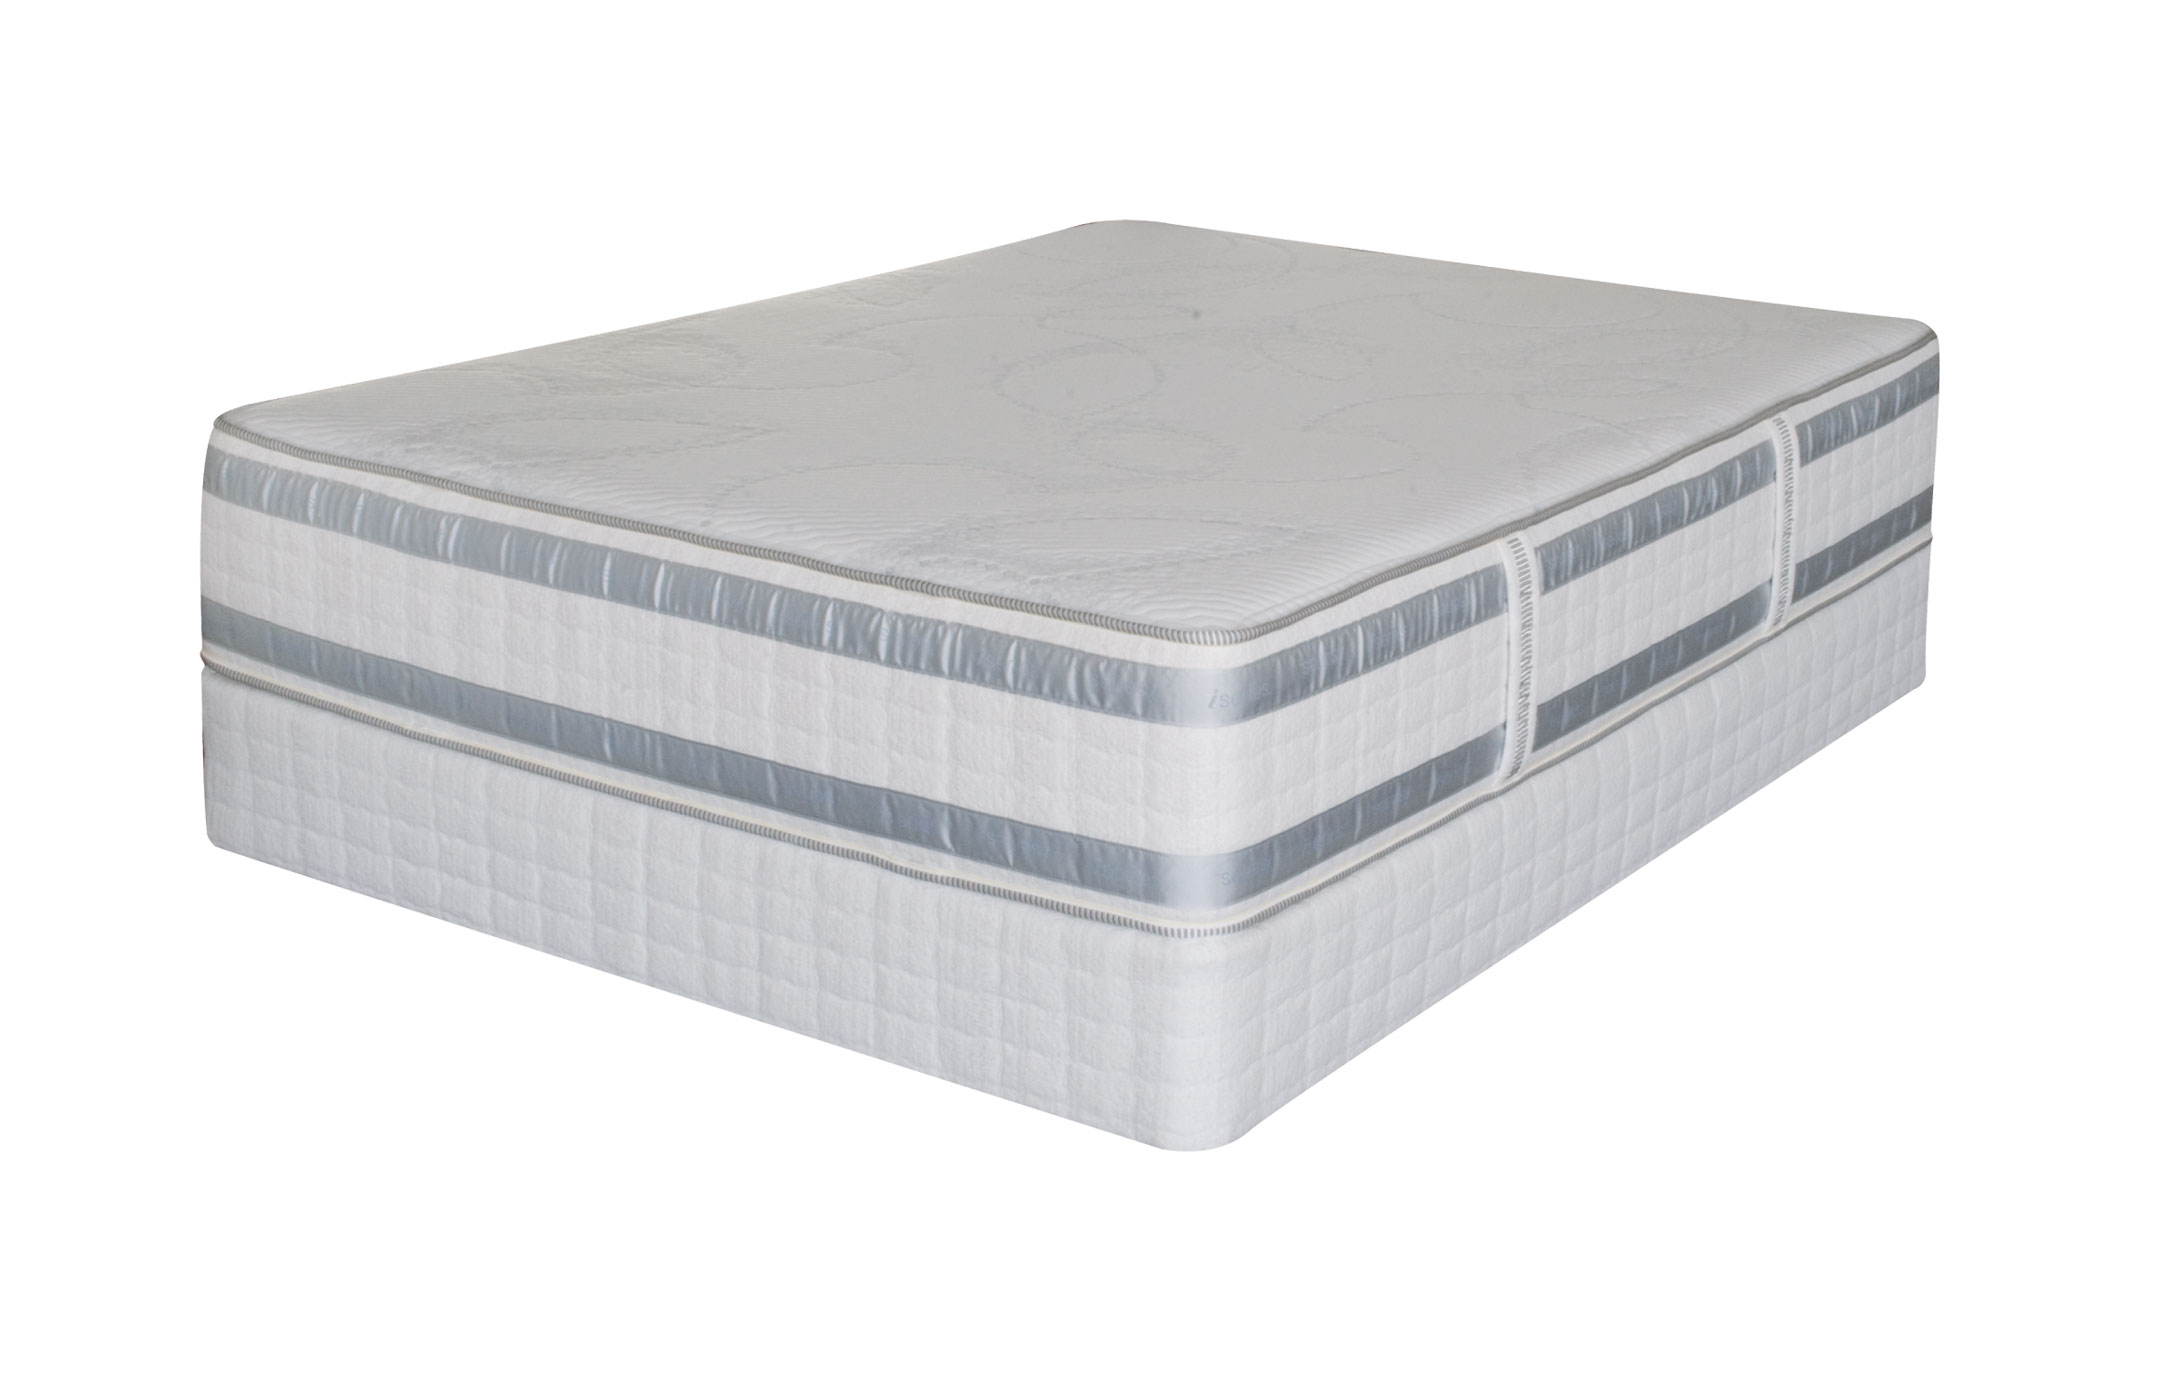 Serta Perfect Day iSeries Celebration Firm Mattress